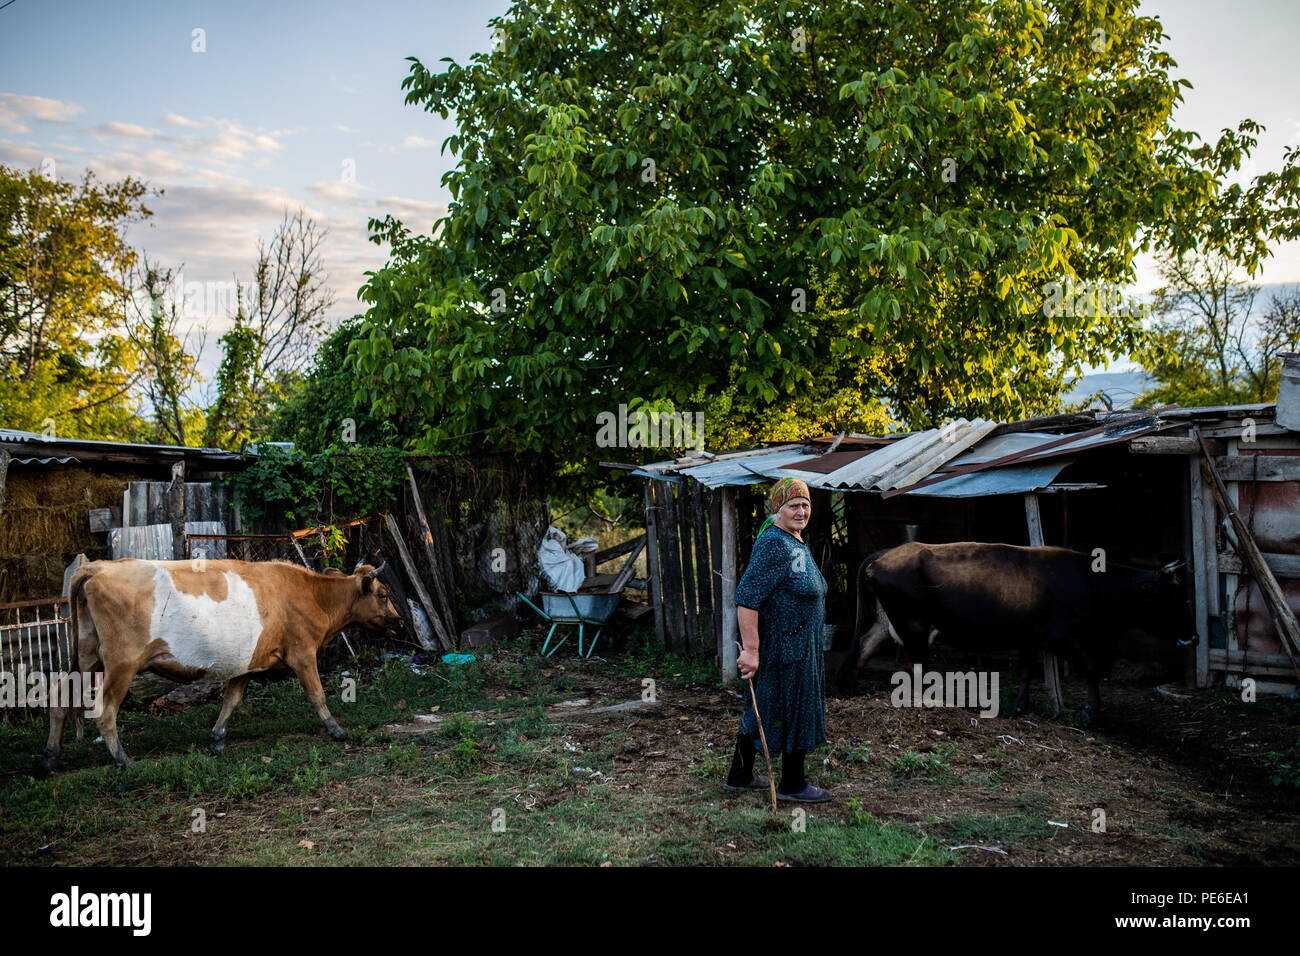 South Ossetia. 12th Aug, 2018. SOUTH OSSETIA - AUGUST 12, 2018: Margarita Madzigova, 63, outside her house in the village of Khetagurovo, Tskhinvali District, South Ossetia; Margarita and her husband Alikhan have been running a farm since their house was restored after the 2008 South Ossetian-Georgian military conflict. Sergei Bobylev/TASS Credit: ITAR-TASS News Agency/Alamy Live News - Stock Image